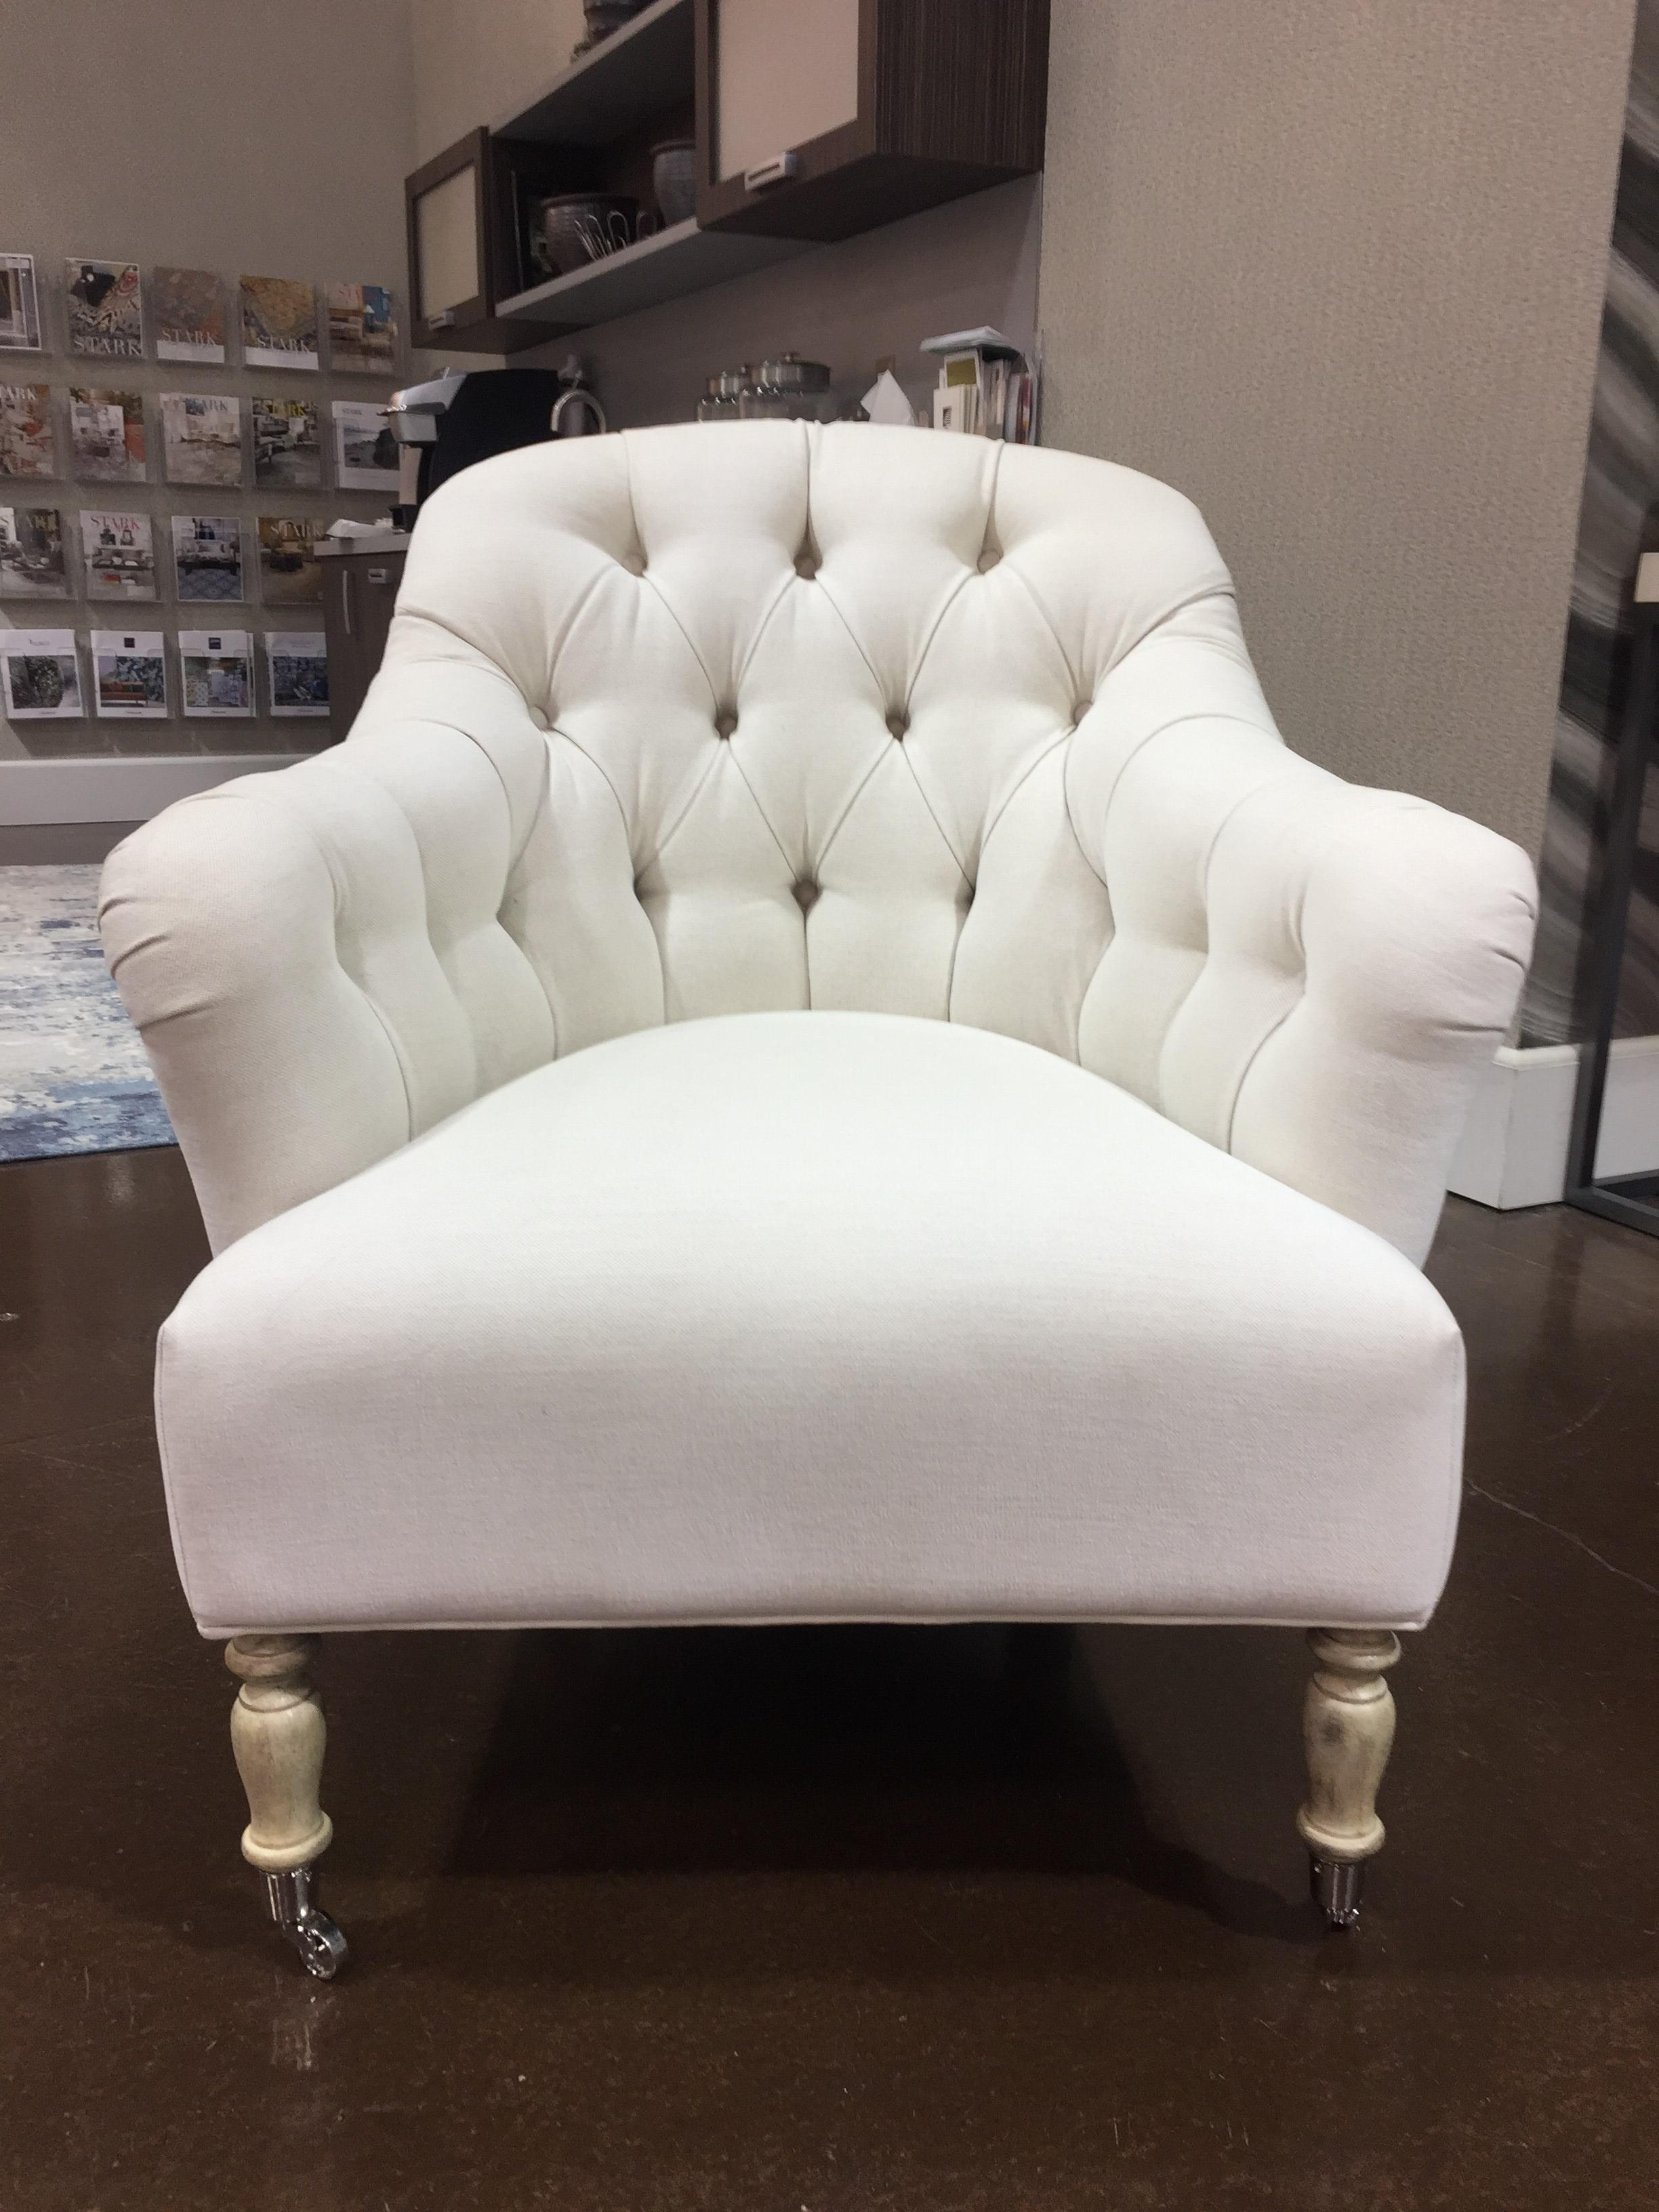 white tufted chair roll in shower traditional clarendon chairish textile for sale image 7 of